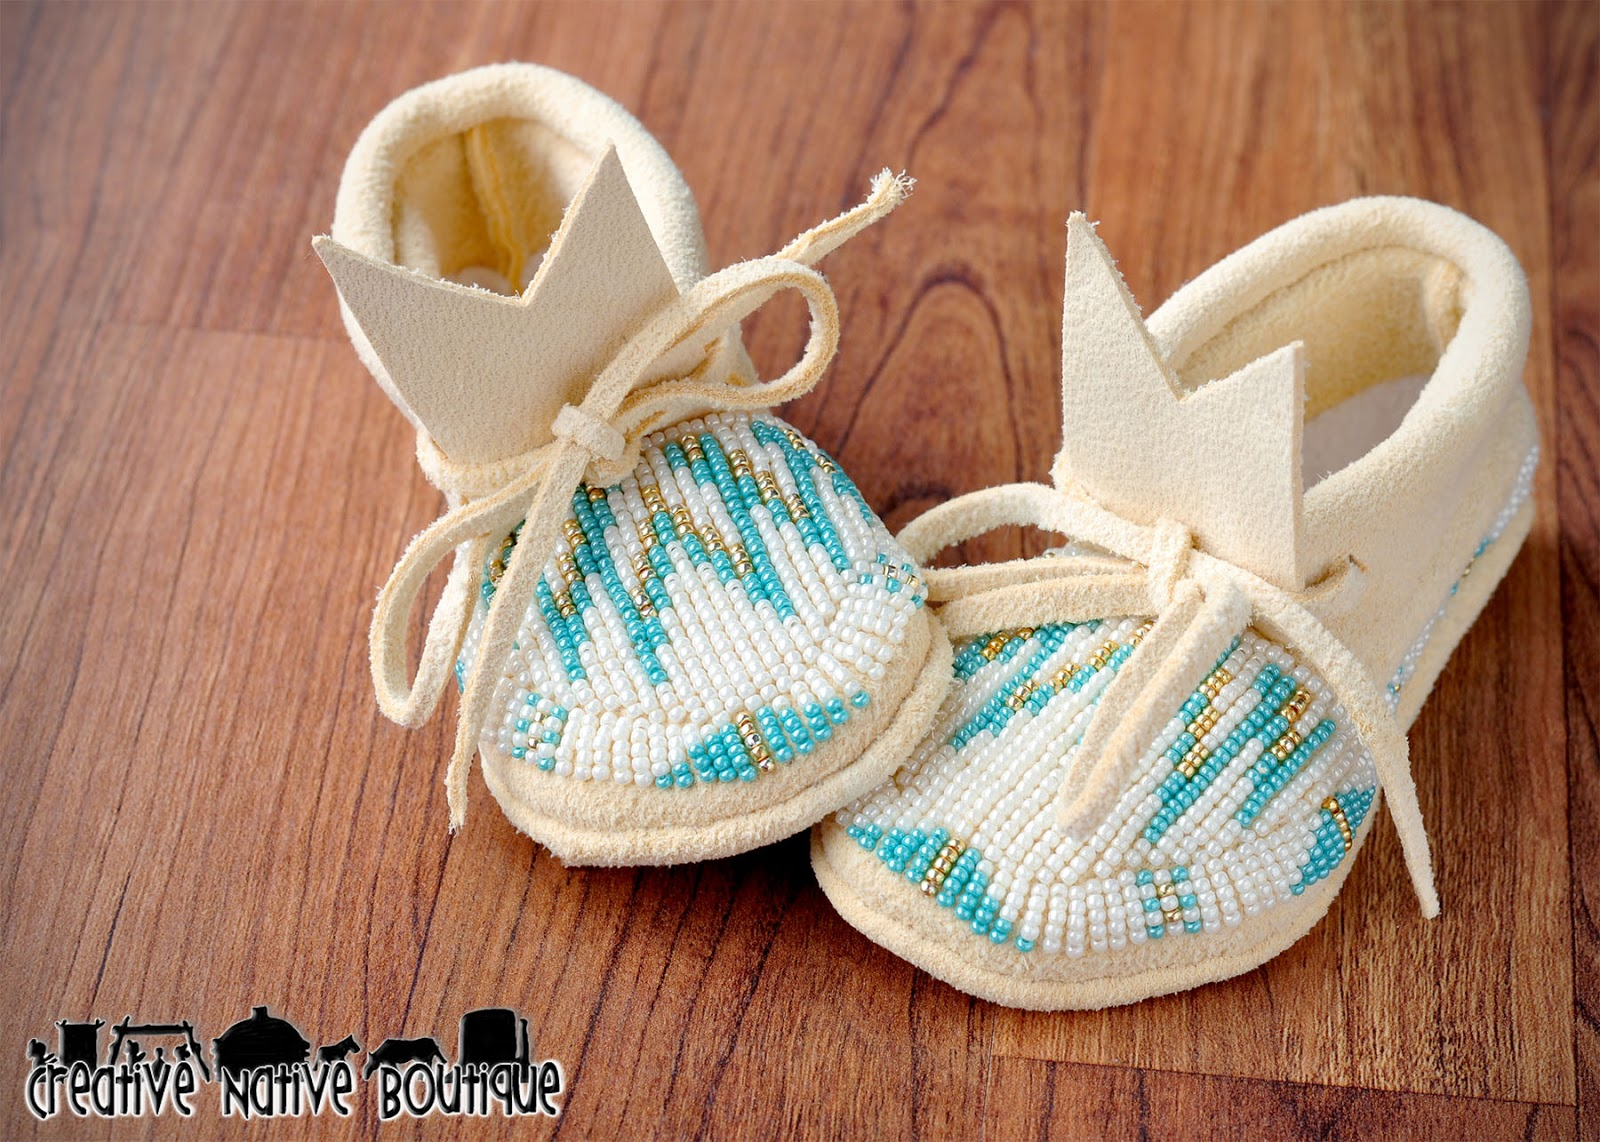 TheBabyHandprintCompany: Baby Moccasins - Baby Booties - Baby Shoes ...